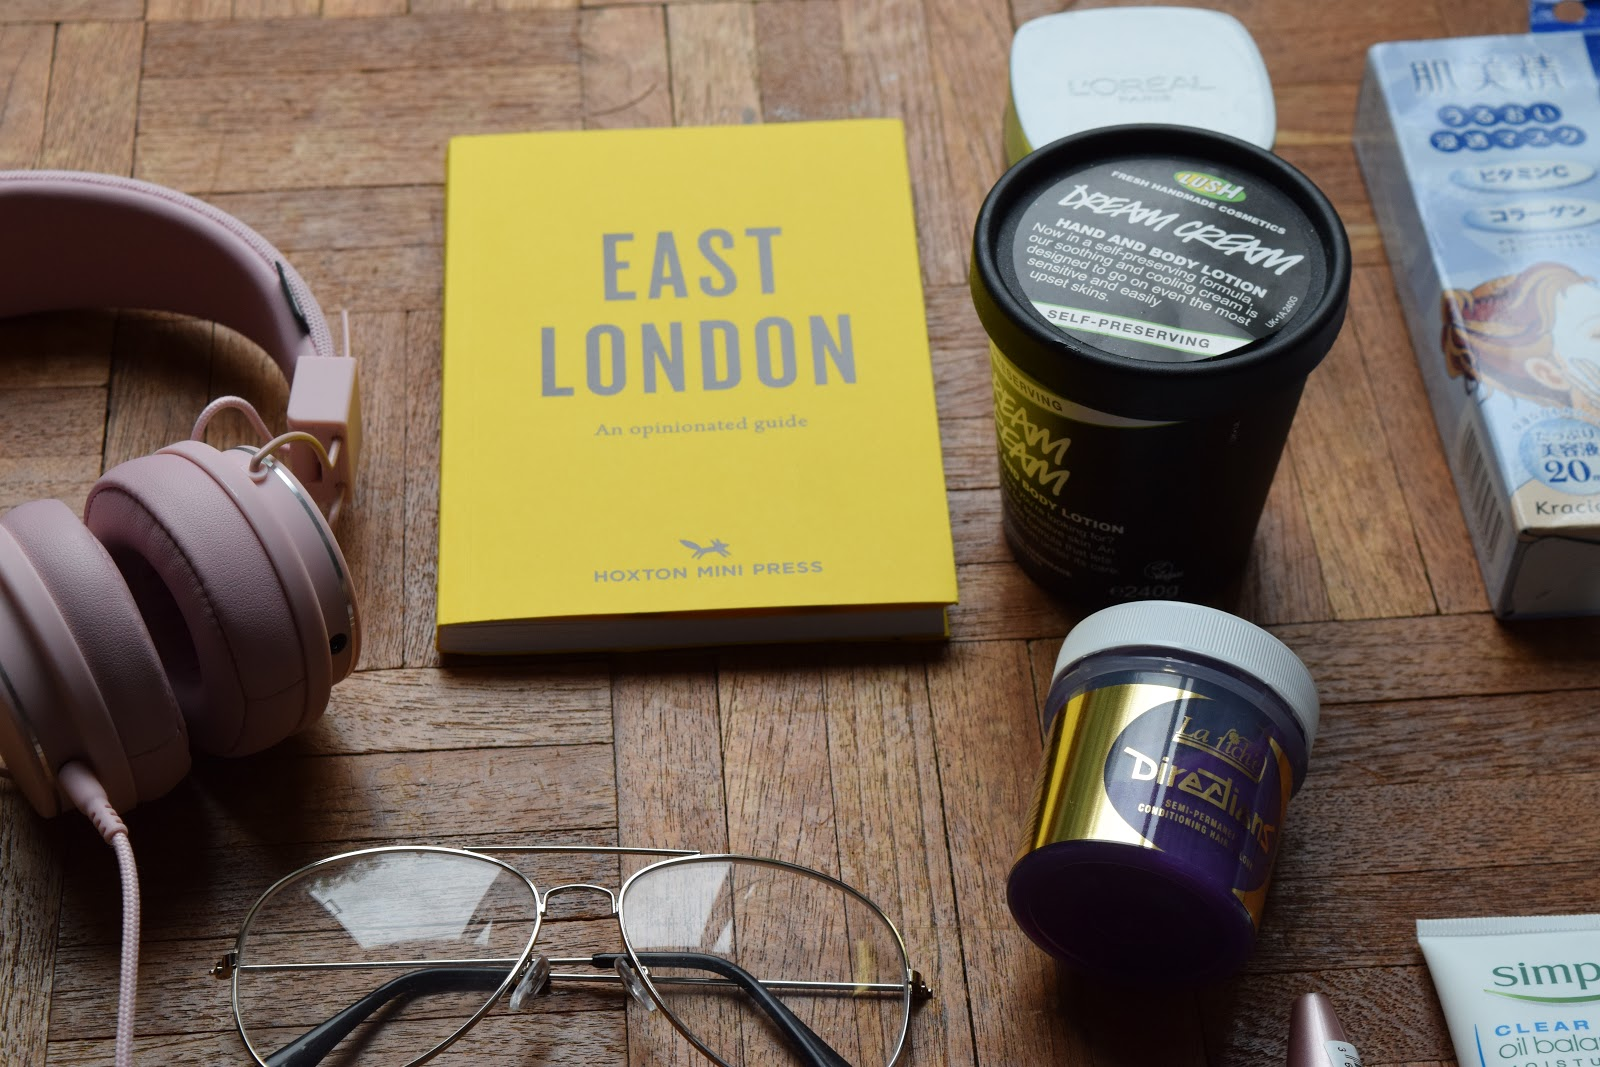 collective haul new in lush urbanears bluebird tea co hoxton mini press